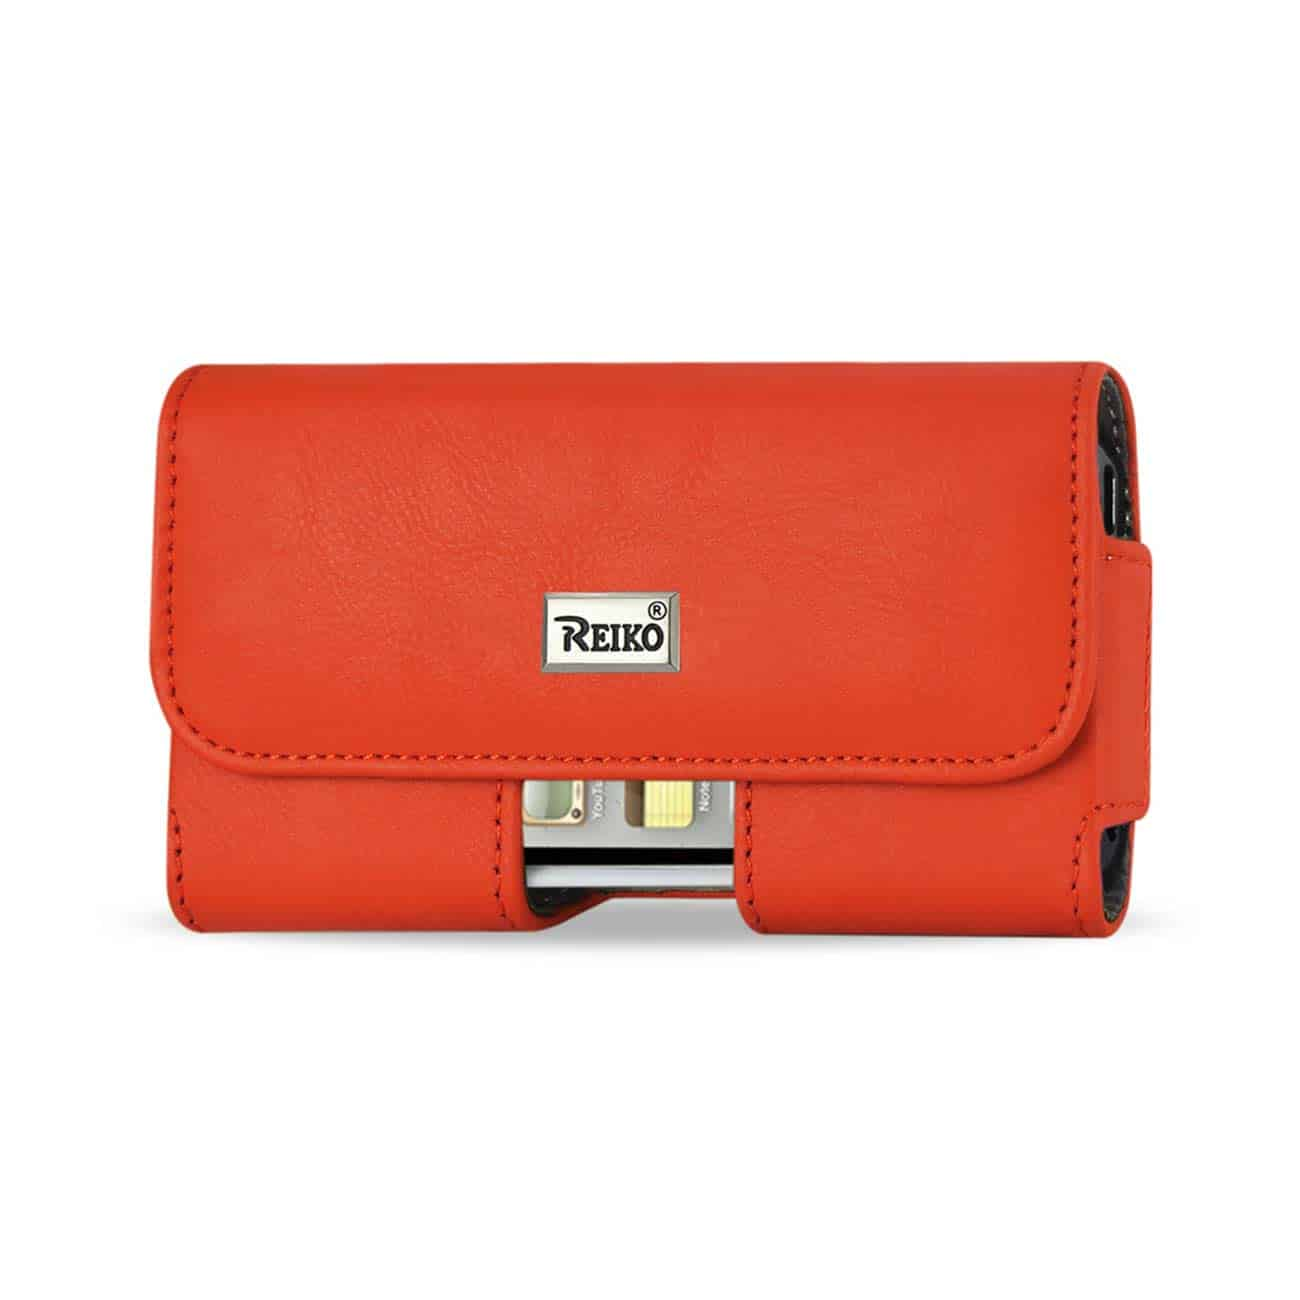 HORIZONTAL POUCH WITH EASY TAKE OUT DESIGN SAMSUNG GALAXY S III I9300 PLUS ORANGE